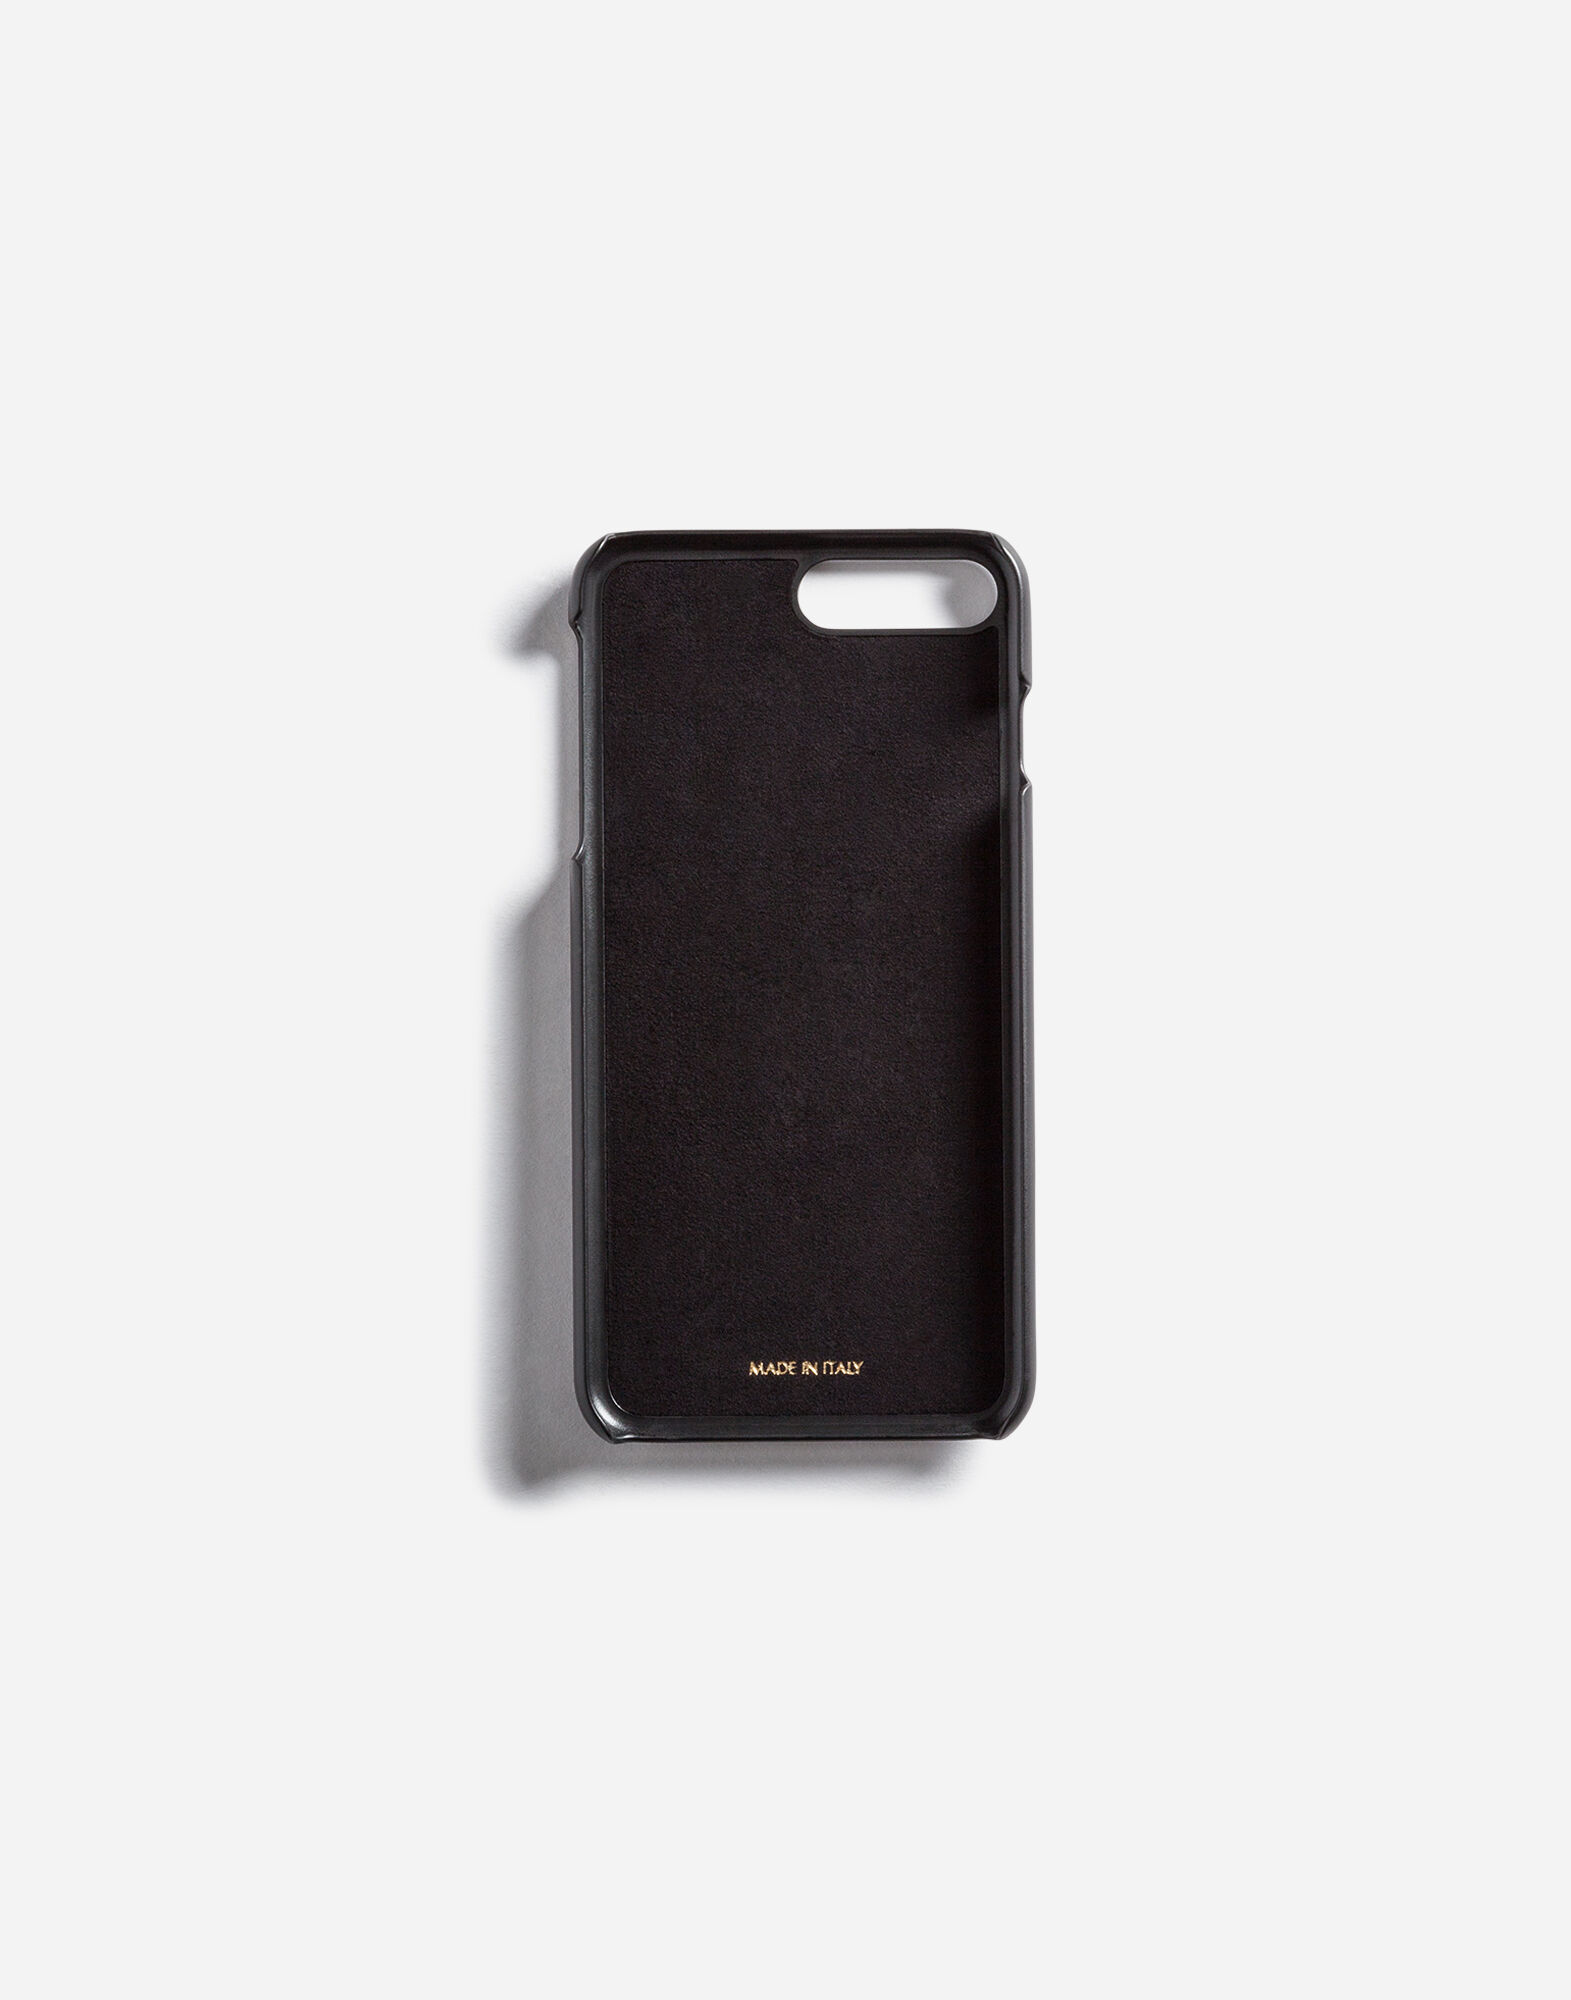 IPHONE 7 PLUS COVER WITH LEATHER DETAIL AND LOGO PATCH